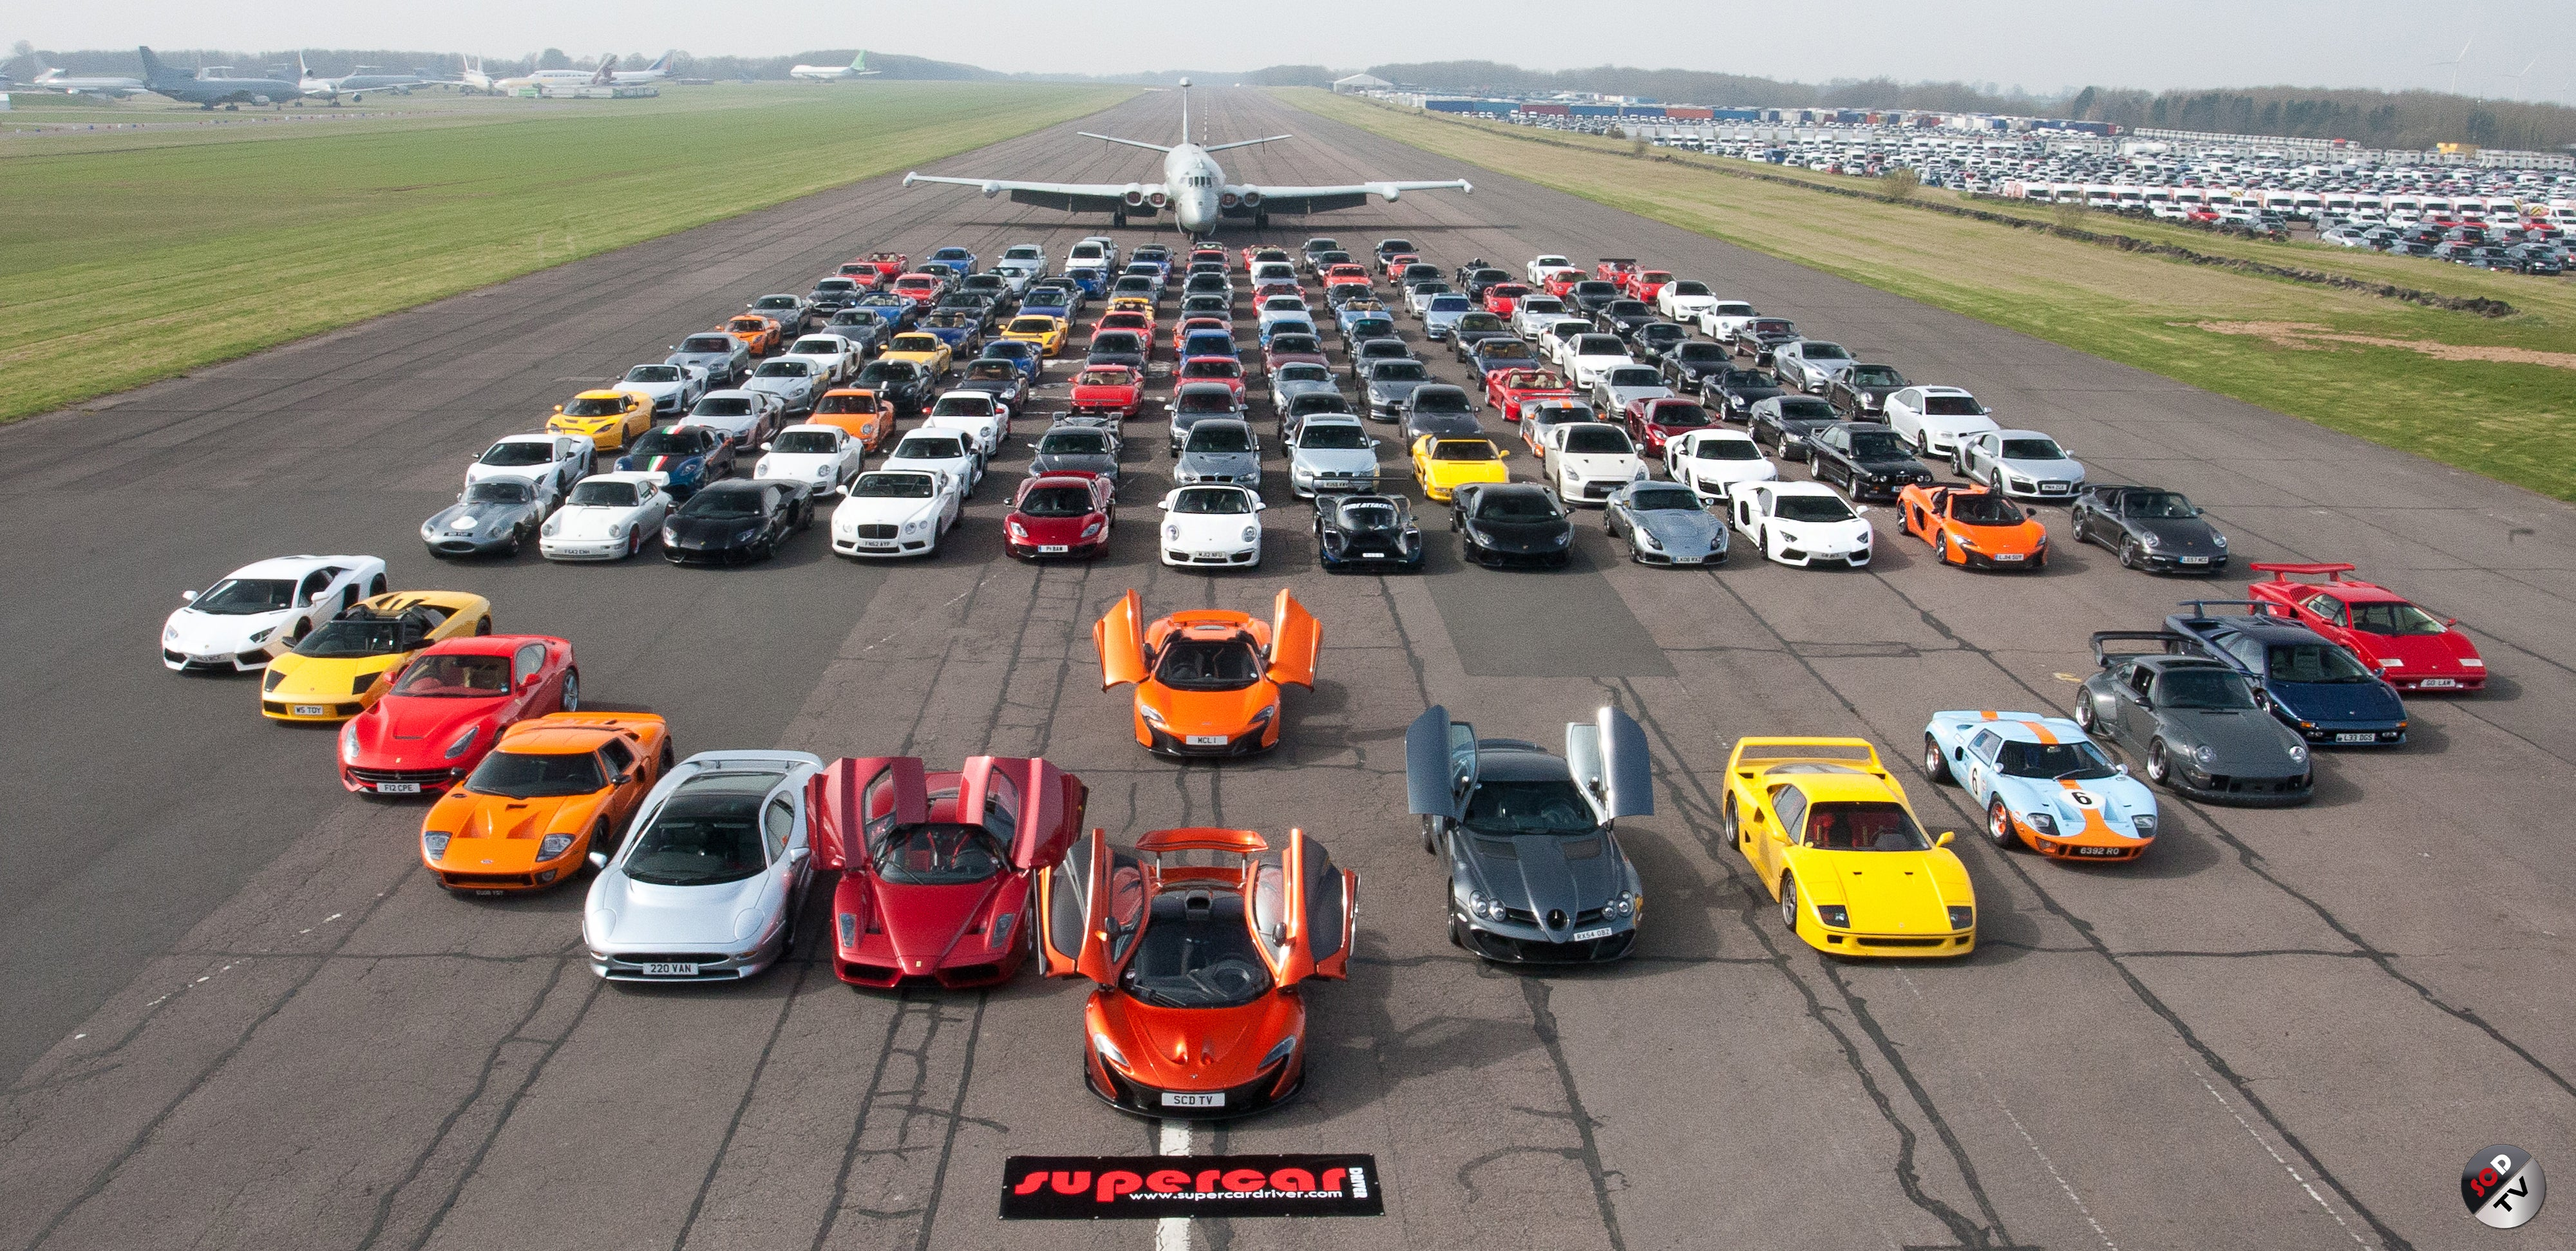 WSupercars - Car Wallpapers, Videos, Specs & Info